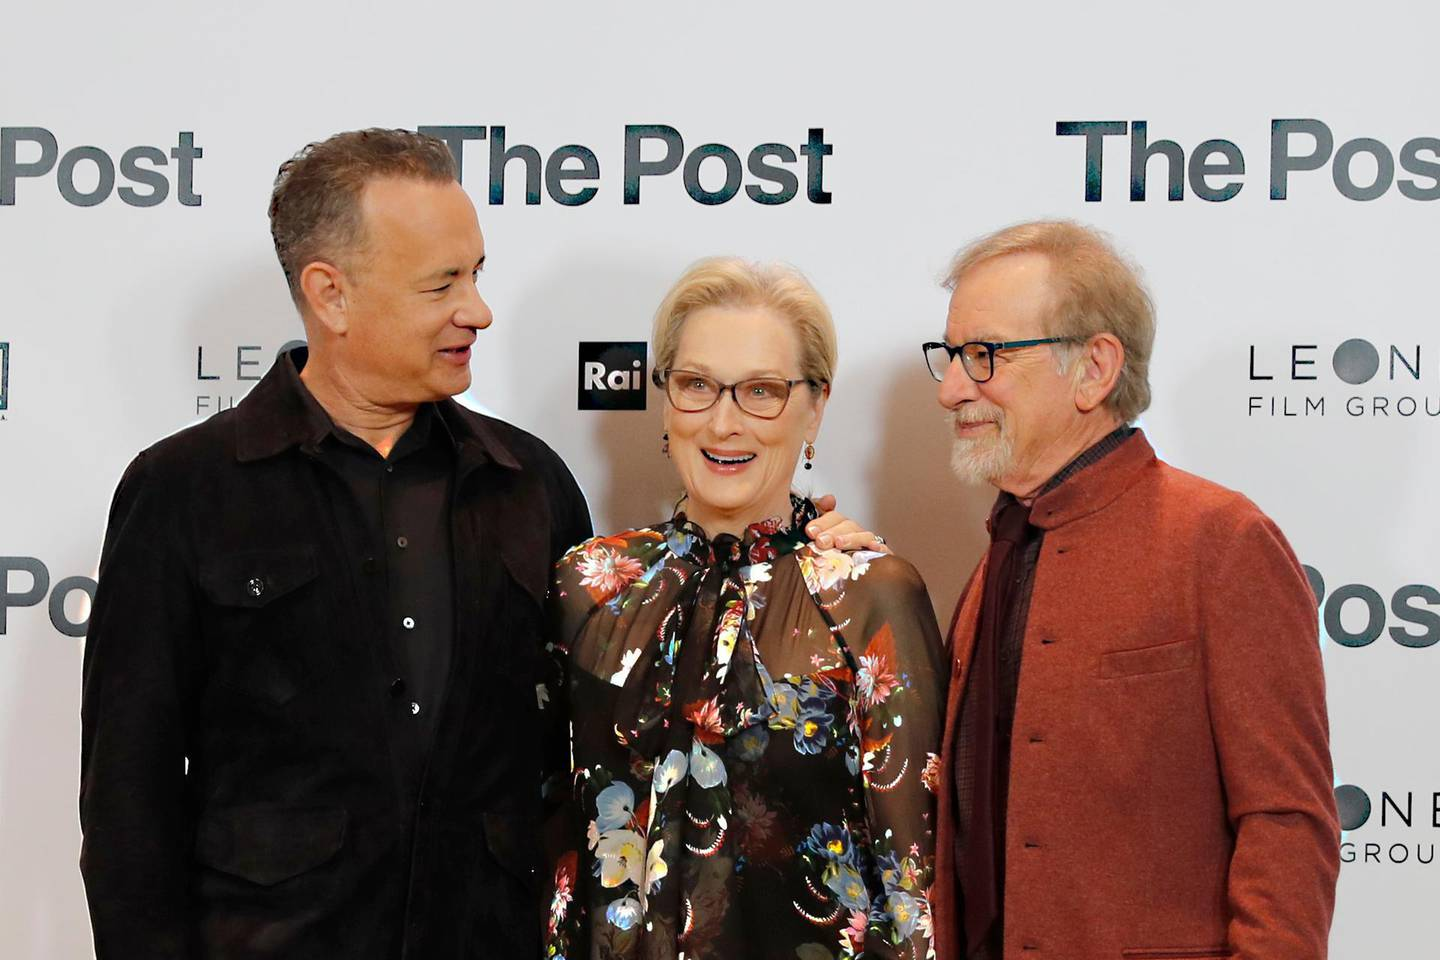 Actors Tom Hanks, from left, Meryl Streep and director Steven Spielberg pose for photographers during a photo call for the film 'The Post' in Milan, Italy, Monday, Jan.15, 2018. (AP Photo/Antonio Calanni)